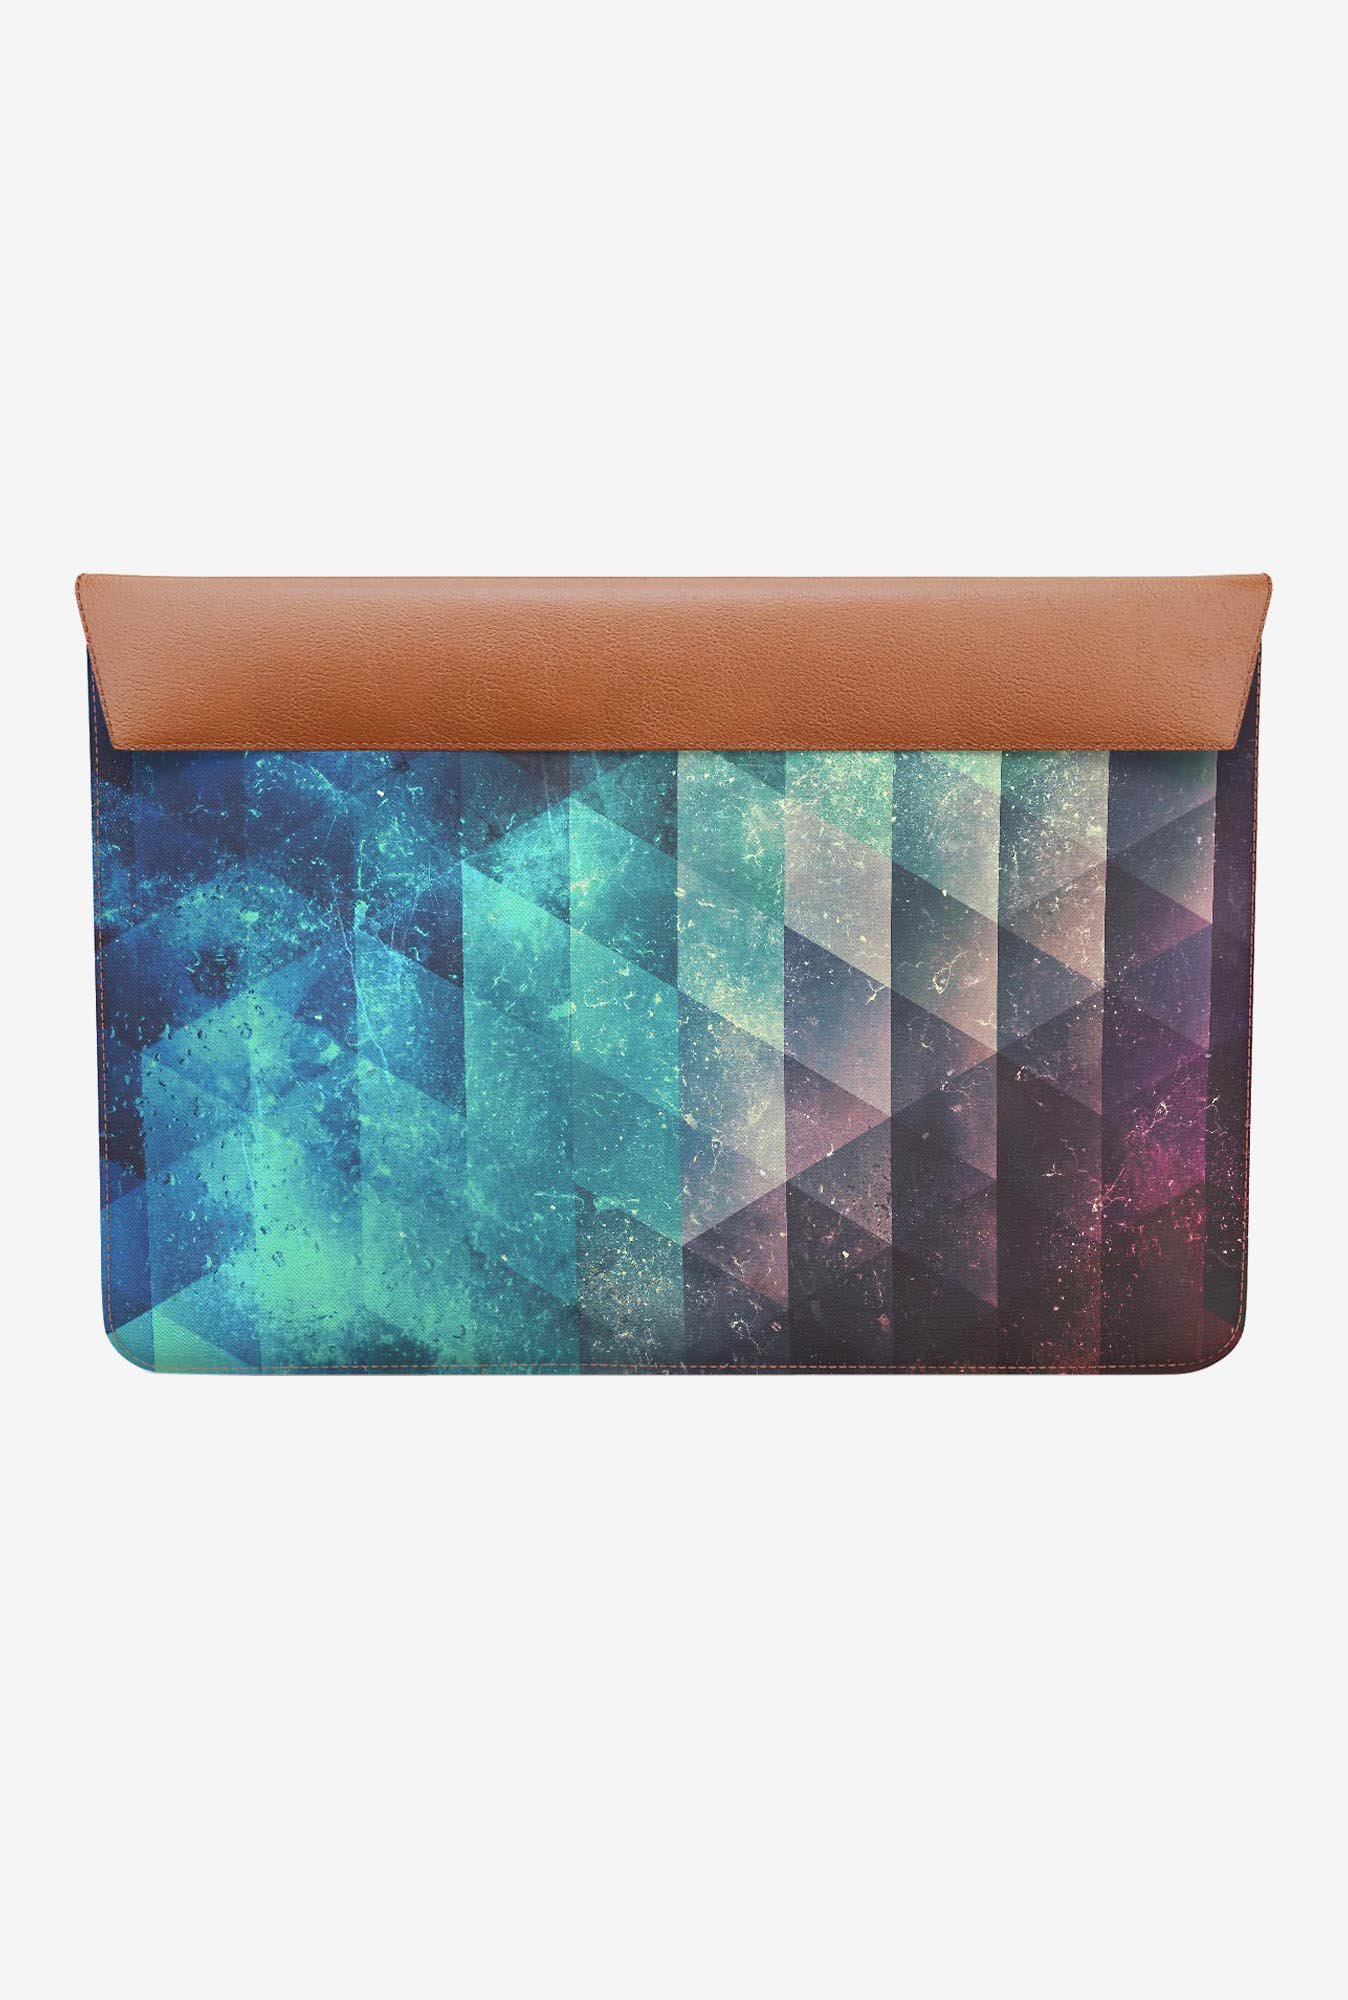 "DailyObjects Brynk Drynk Macbook Air 11"" Envelope Sleeve"